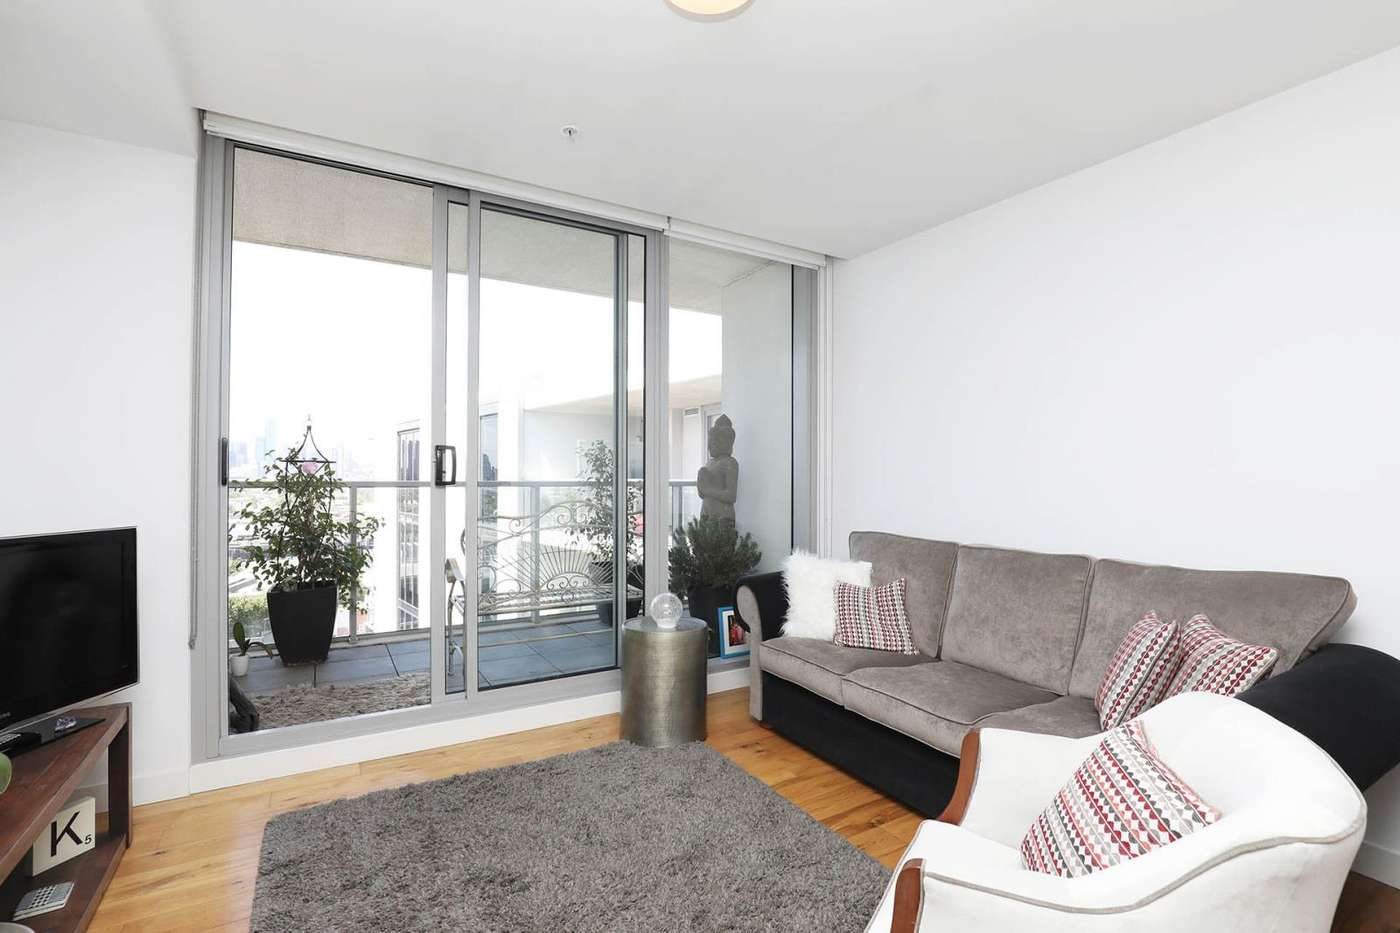 Main view of Homely apartment listing, 904/101 Bay Street, Port Melbourne, VIC 3207